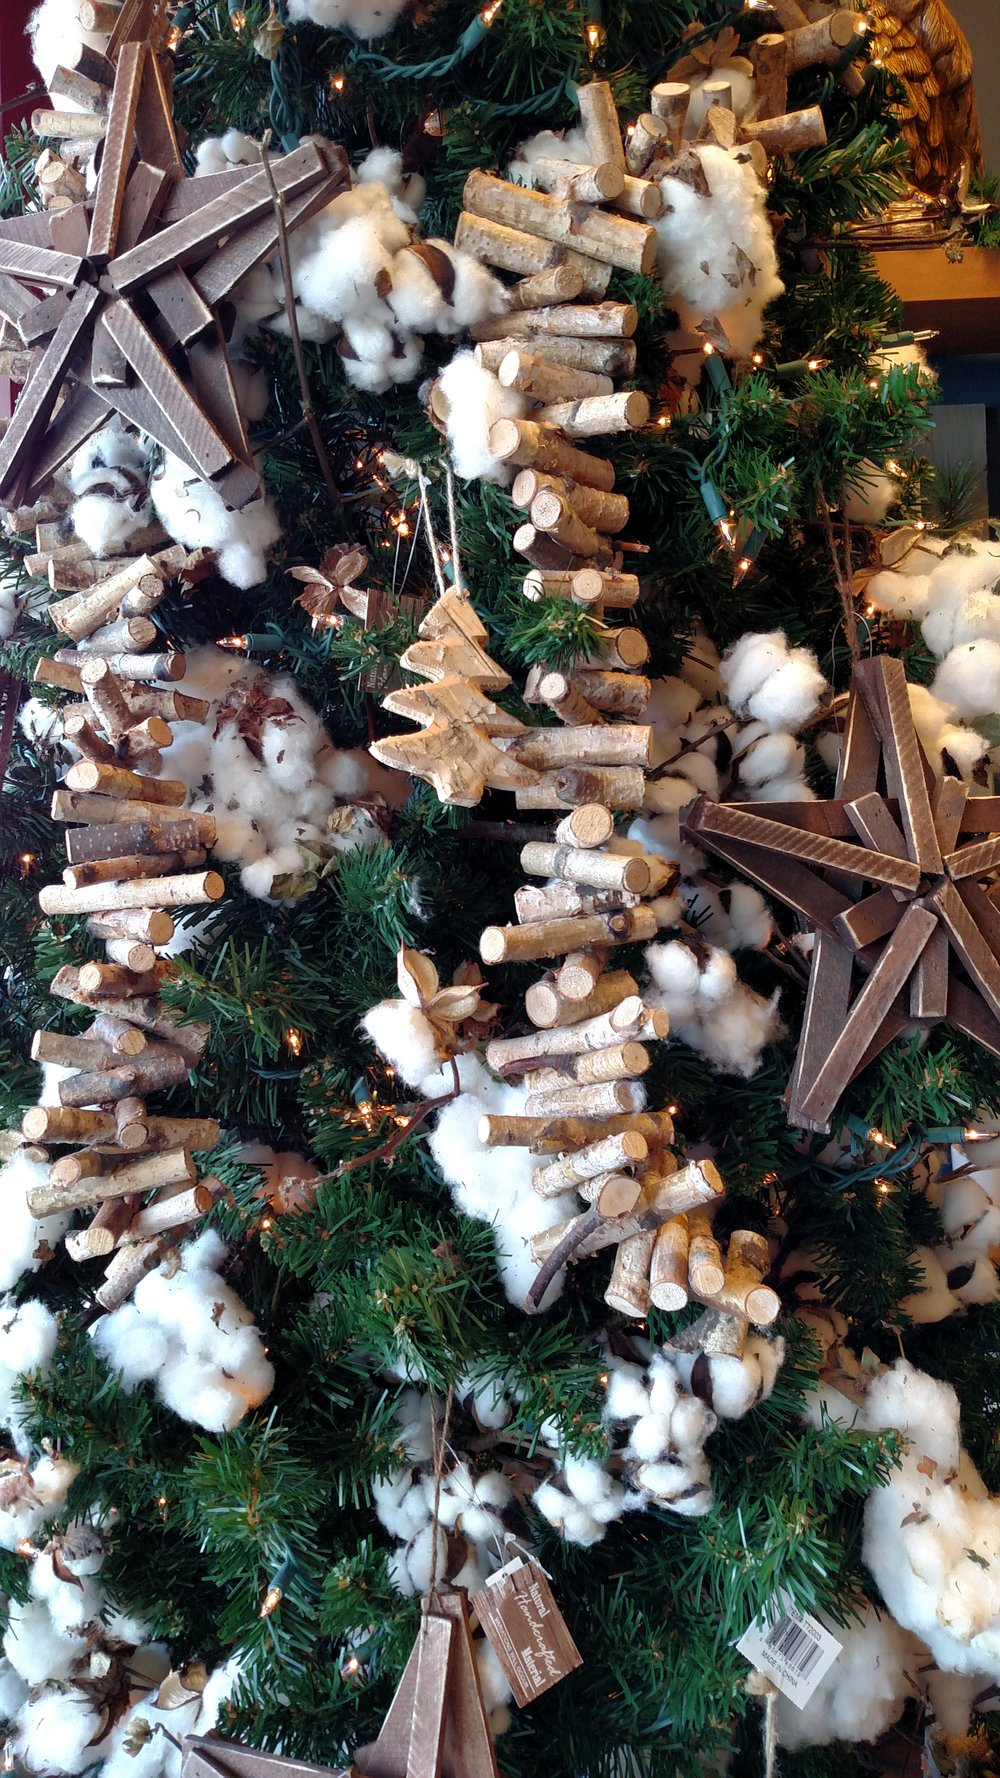 Handmade Ornaments and Rustic Elements on a Gorgeous Christmas Tree with Cotton Buds